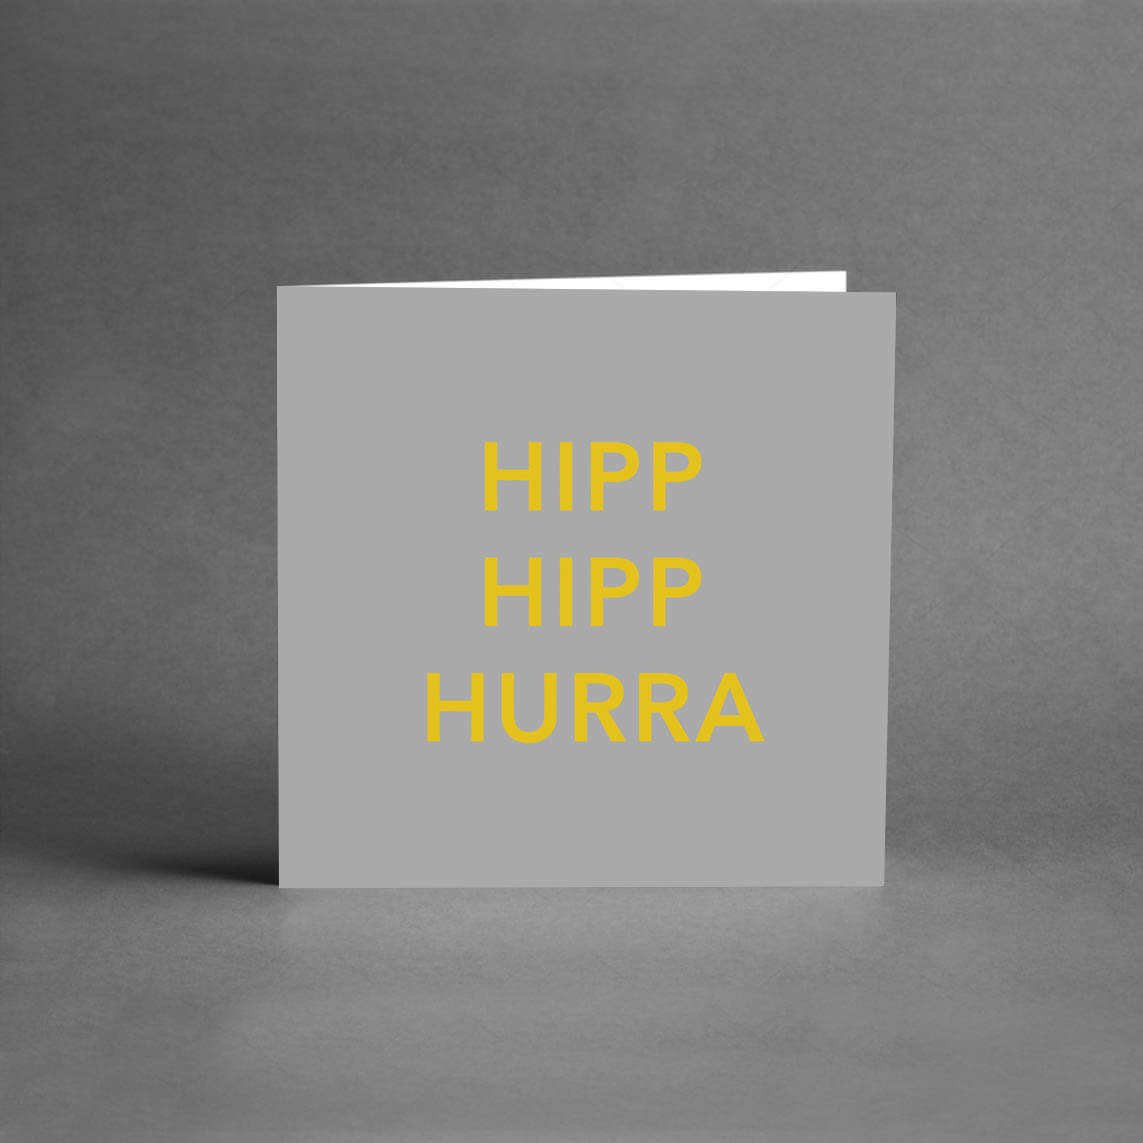 MINI Collection - Hipp Hipp Hurra grå & guld [25-pack]